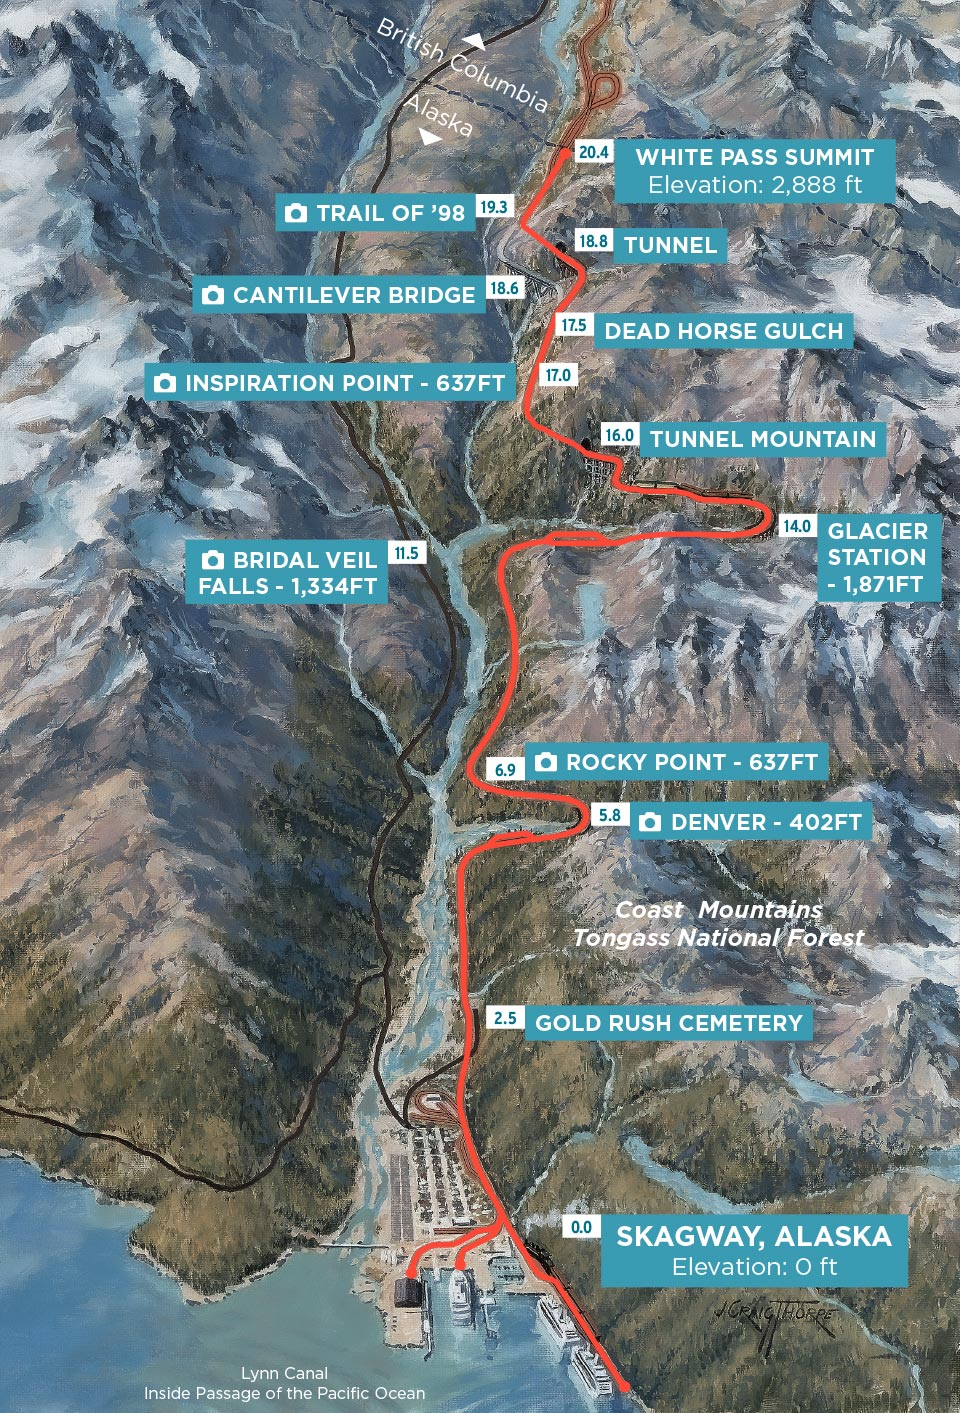 The route you will take on the Summit Excursion